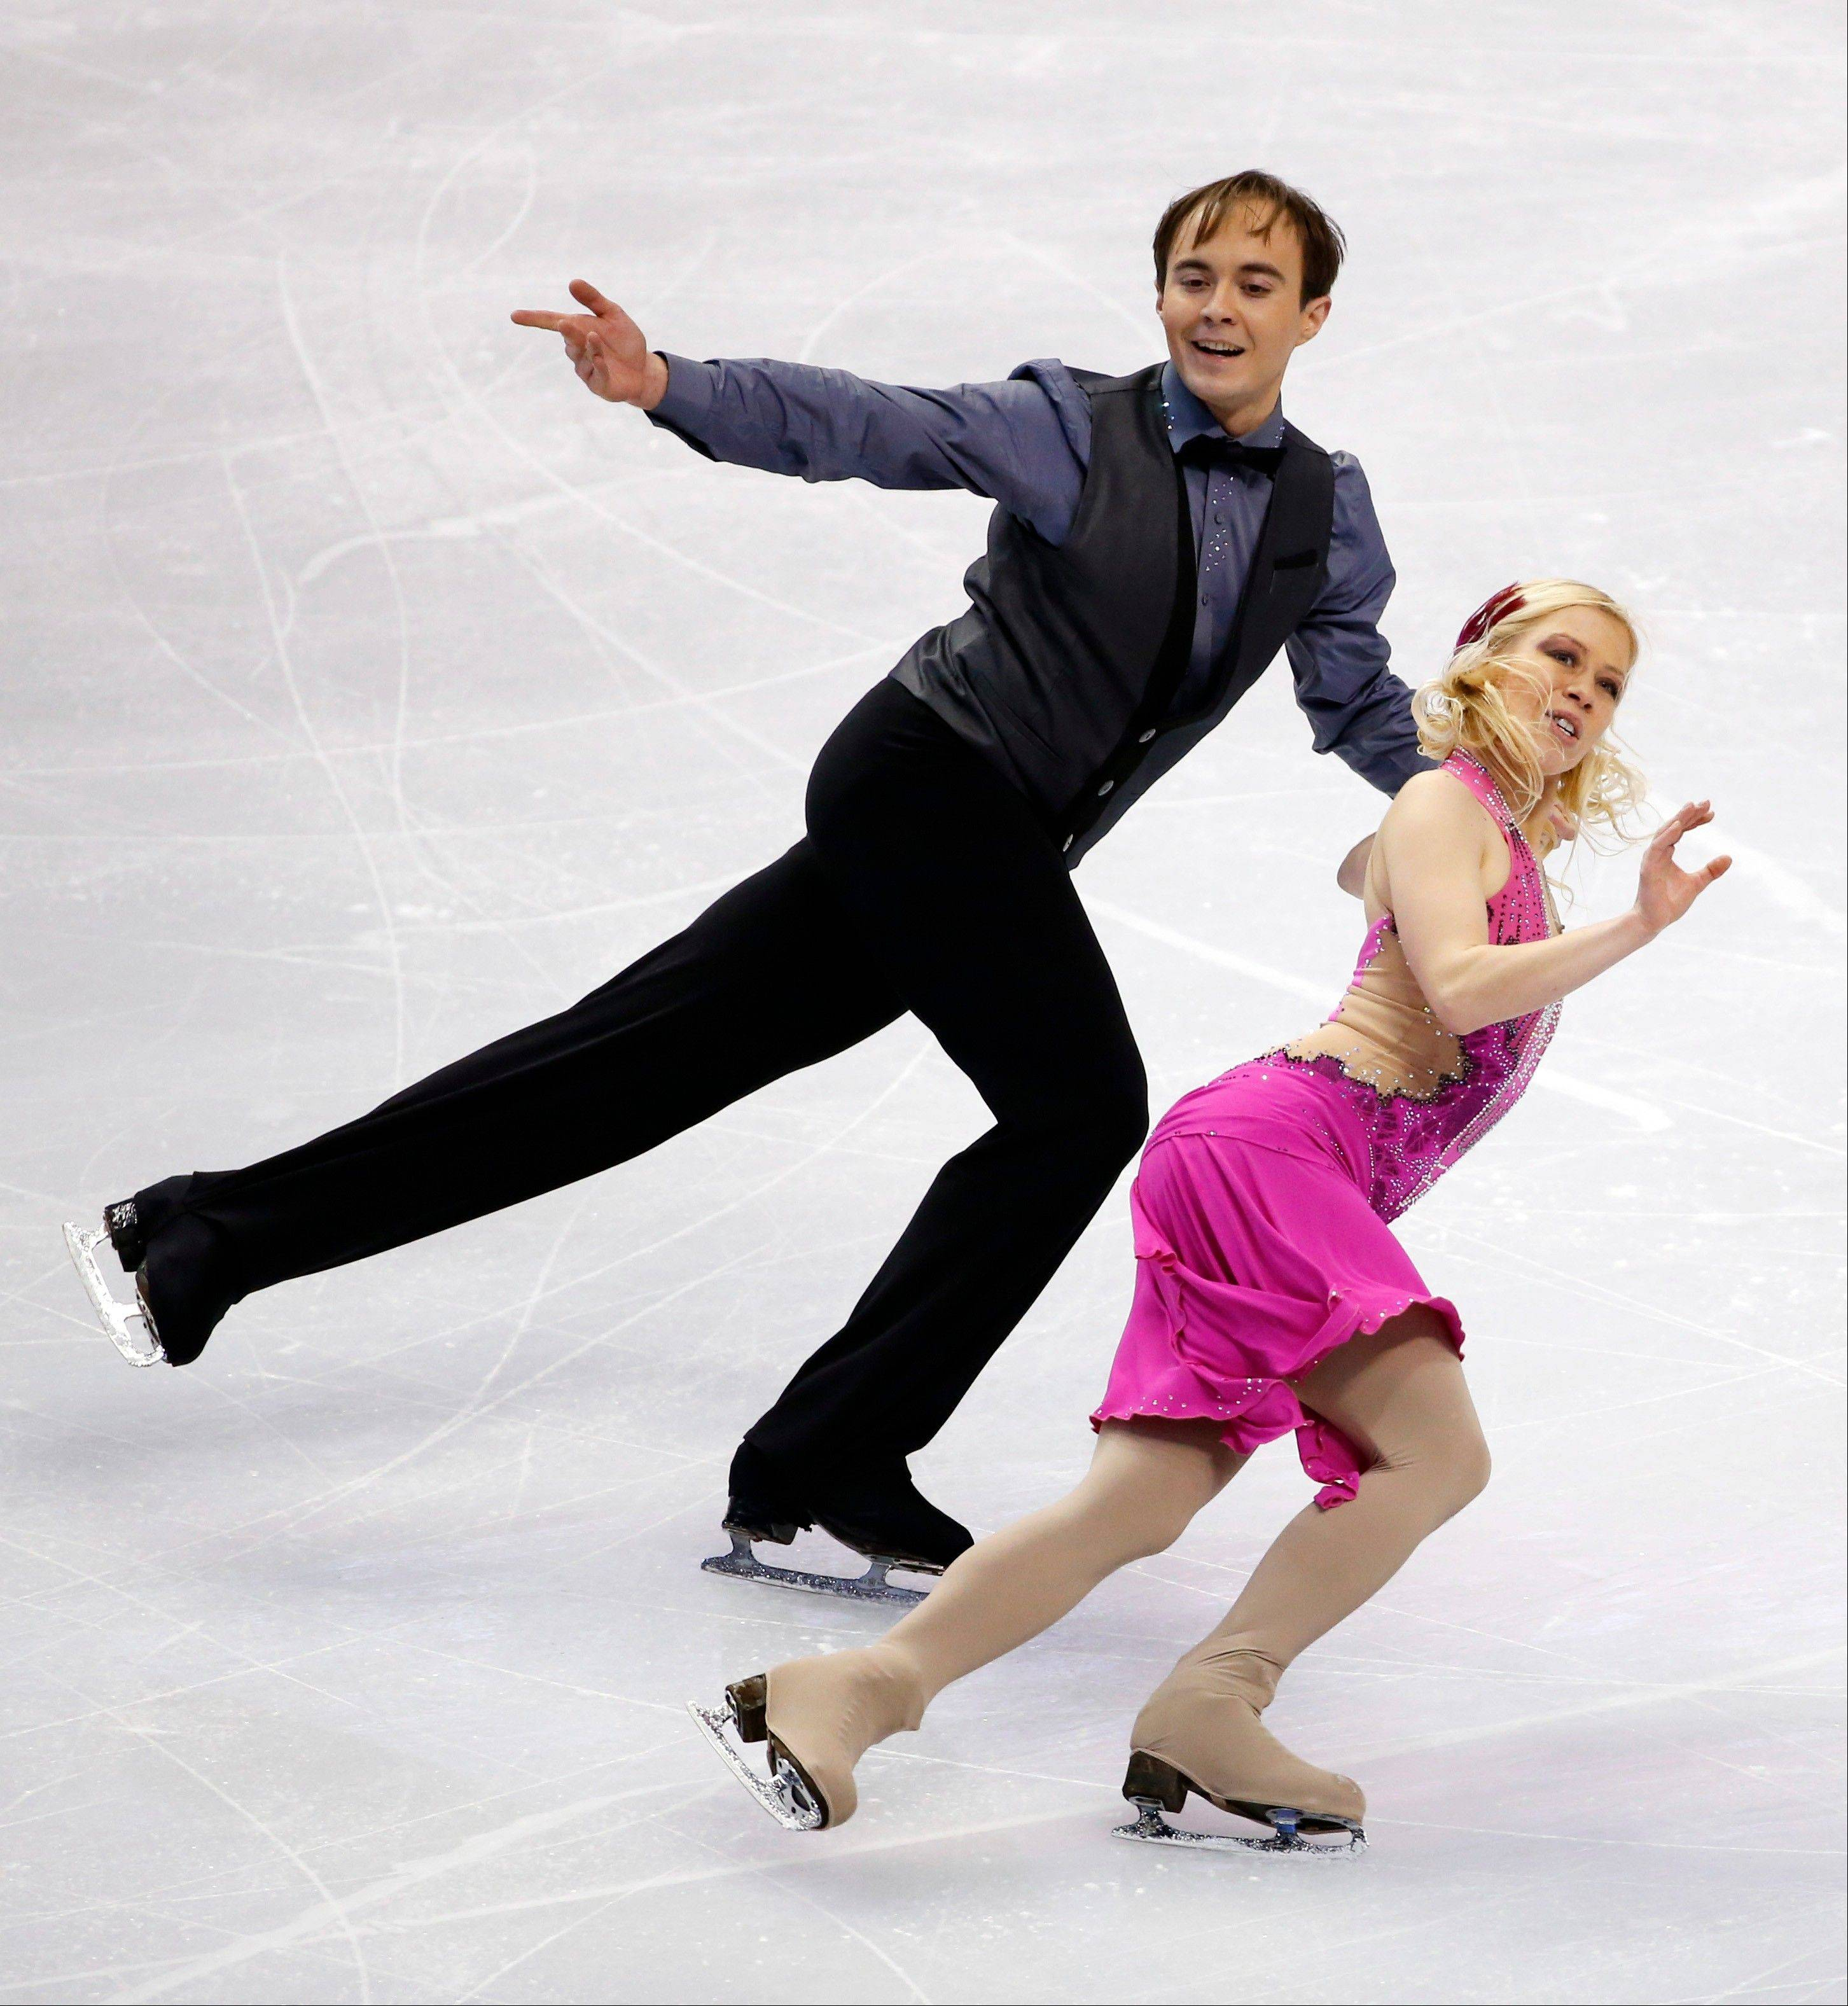 Kseniya Ponomaryova and Oleg Altukhov, who both train in Naperville, skate during the ice dance short program Friday at the U.S. Figure Skating Championships in Boston. They ended the short program in 16th place.